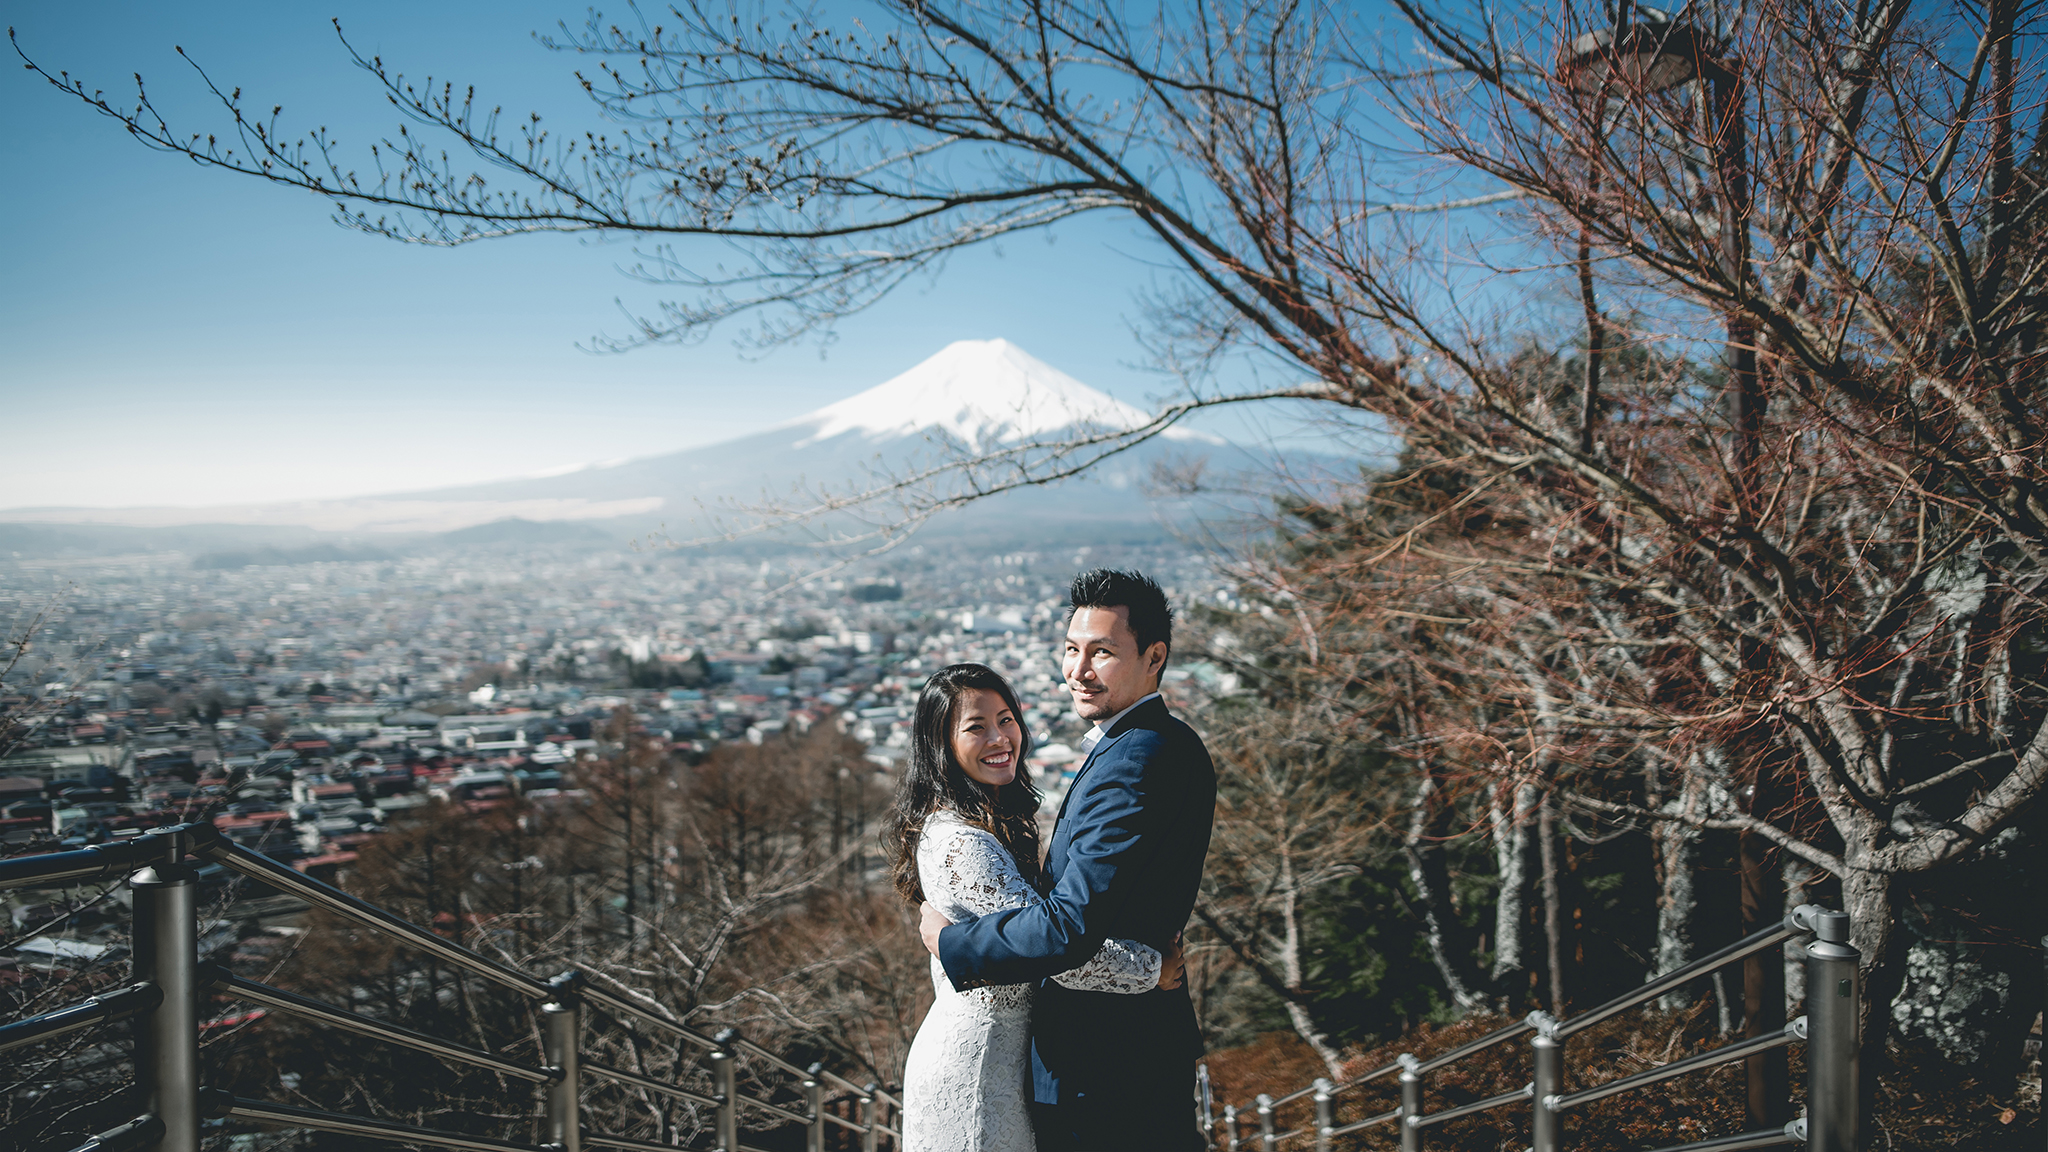 Japan Prewedding 8.JPG